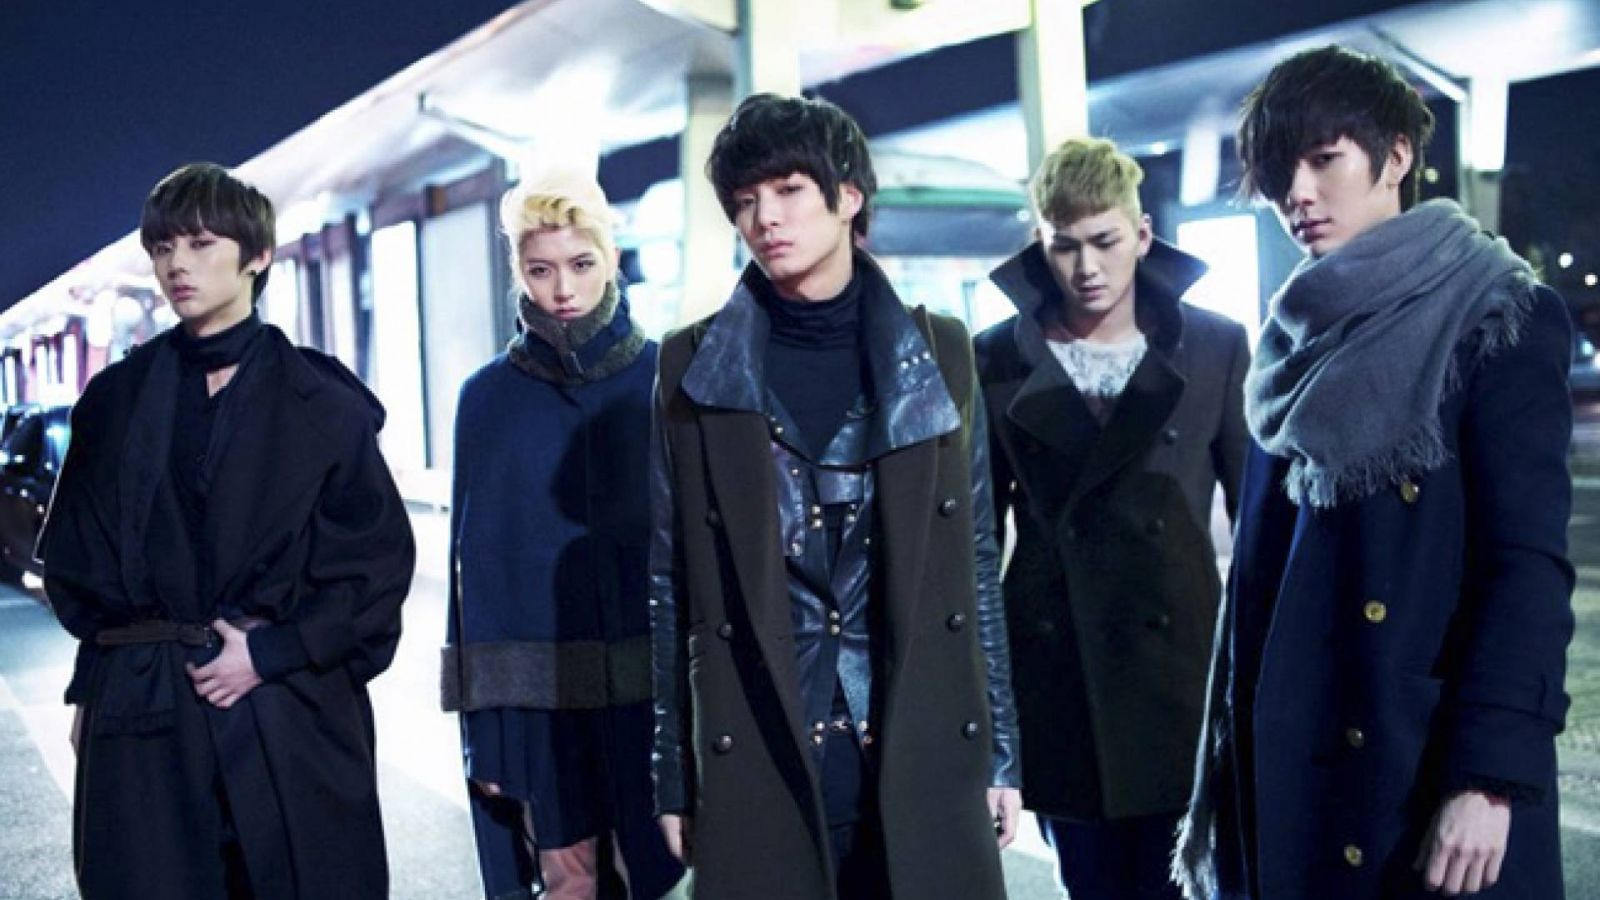 NU'EST fará show no Brasil © Pledis Entertainment